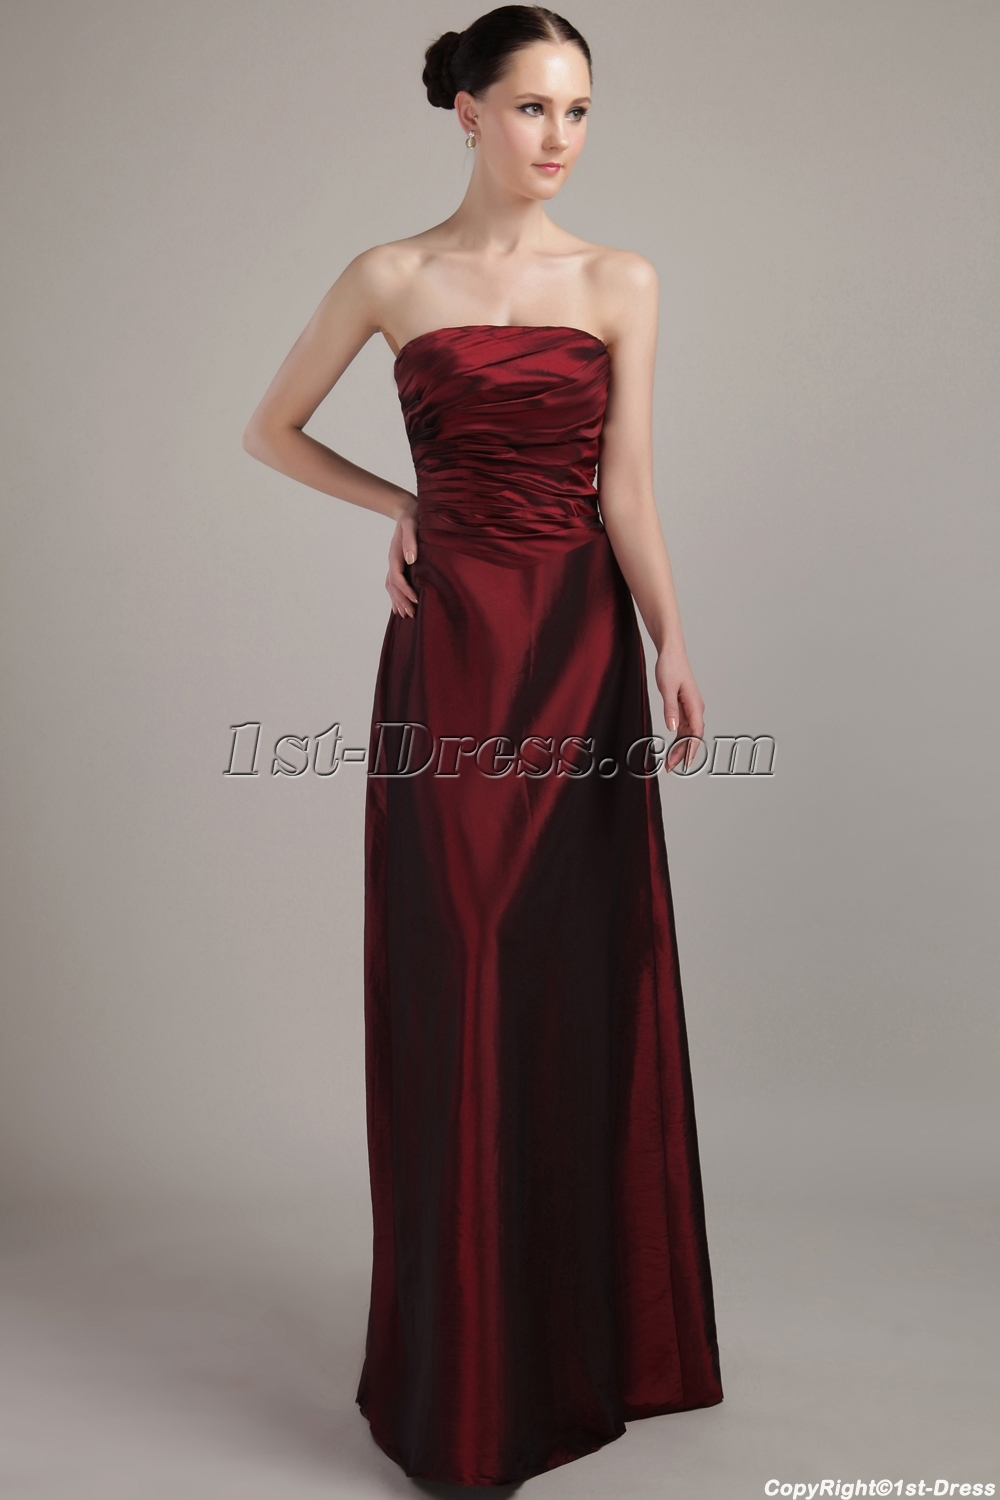 images/201304/big/Strapless-Long-Burgundy-Inexpensive-Bridesmaid-Gowns-under-$100-IMG_3053-1078-b-1-1366272784.jpg